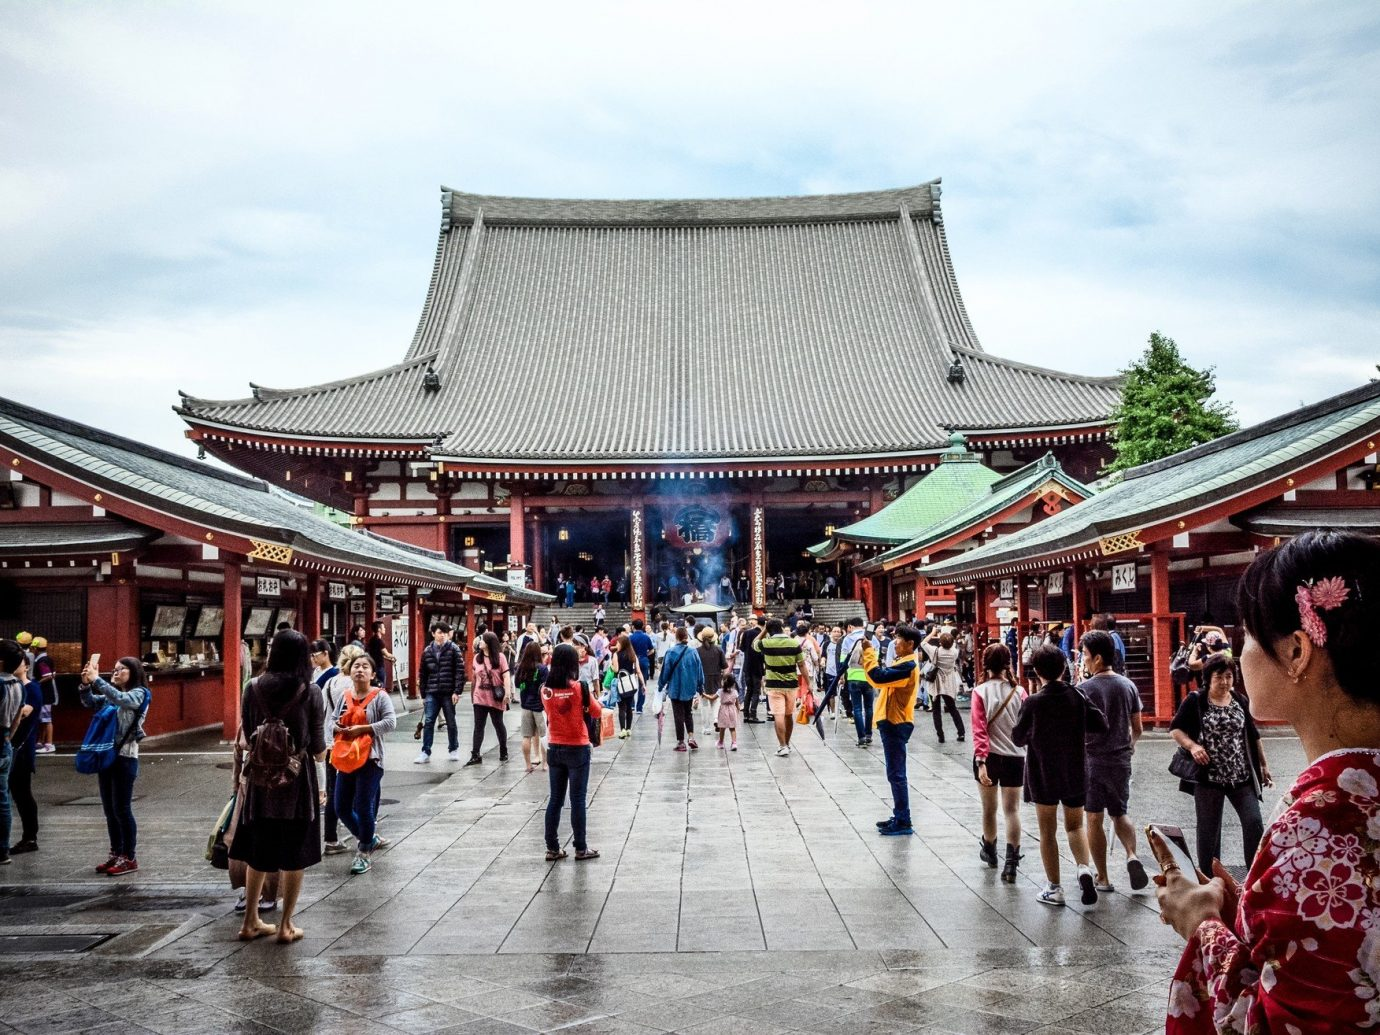 Architecture asia attraction building Buildings crowd Cultural culture Exterior Historic people temple tourists sky outdoor group public space City tourism market shrine travel several day